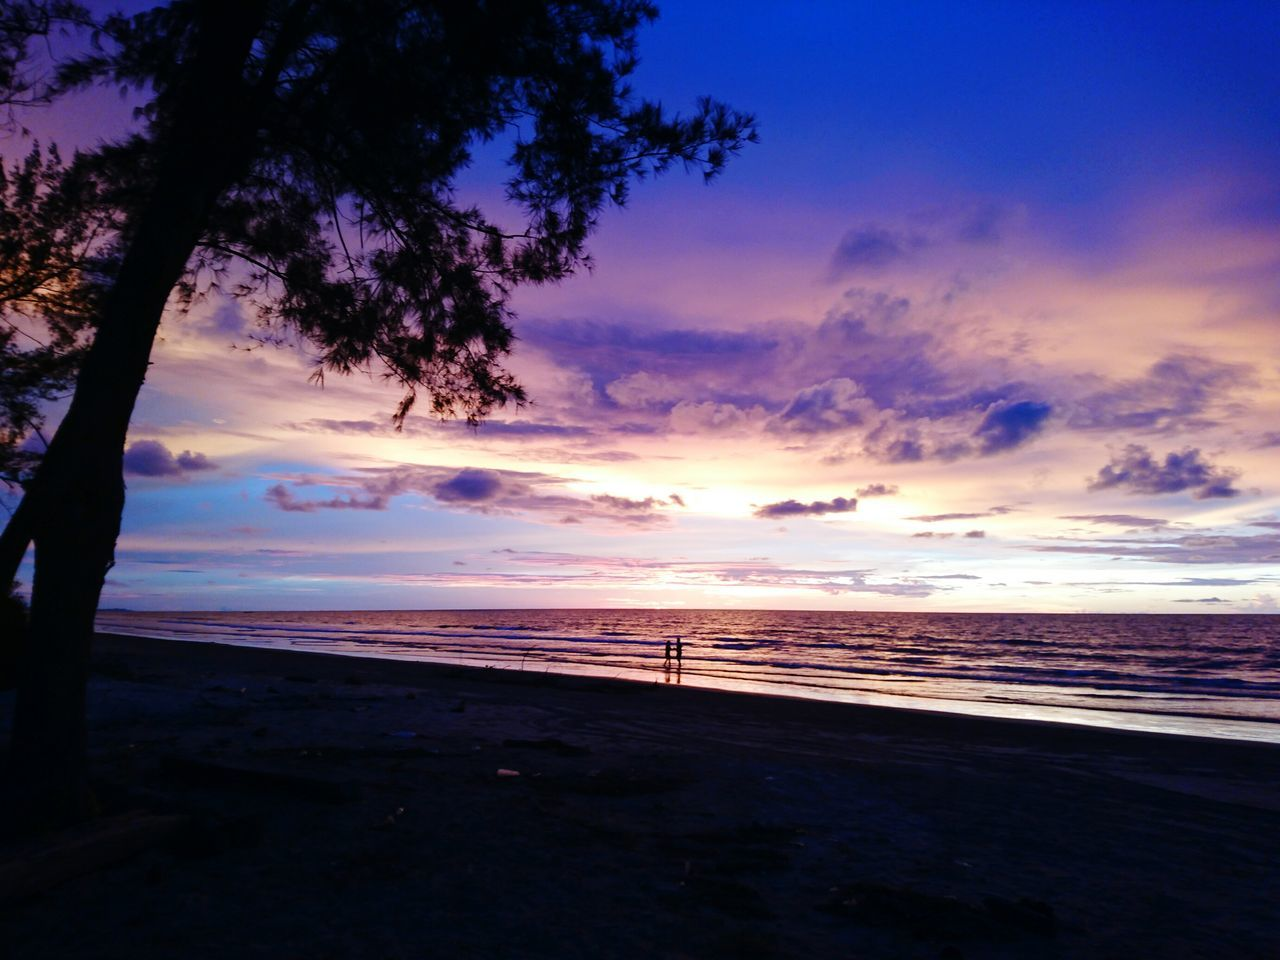 Lovers In The Background Enjoying The Sunset Once In A Lifetime Walking Hand In Hand Sunset Colors Purple Sky Golden Hour Beach Photography From The Eyes Of A Solo Traveller Forever Alone Dramatic Sky Landscape Romantic Sky From My Point Of View Tree Silhouette Taken From Sony Xperia Z5 Dusk Colours This Week On Eyeem EyeEm Best Shots - Nature December 2016 EyeEm Best Shots